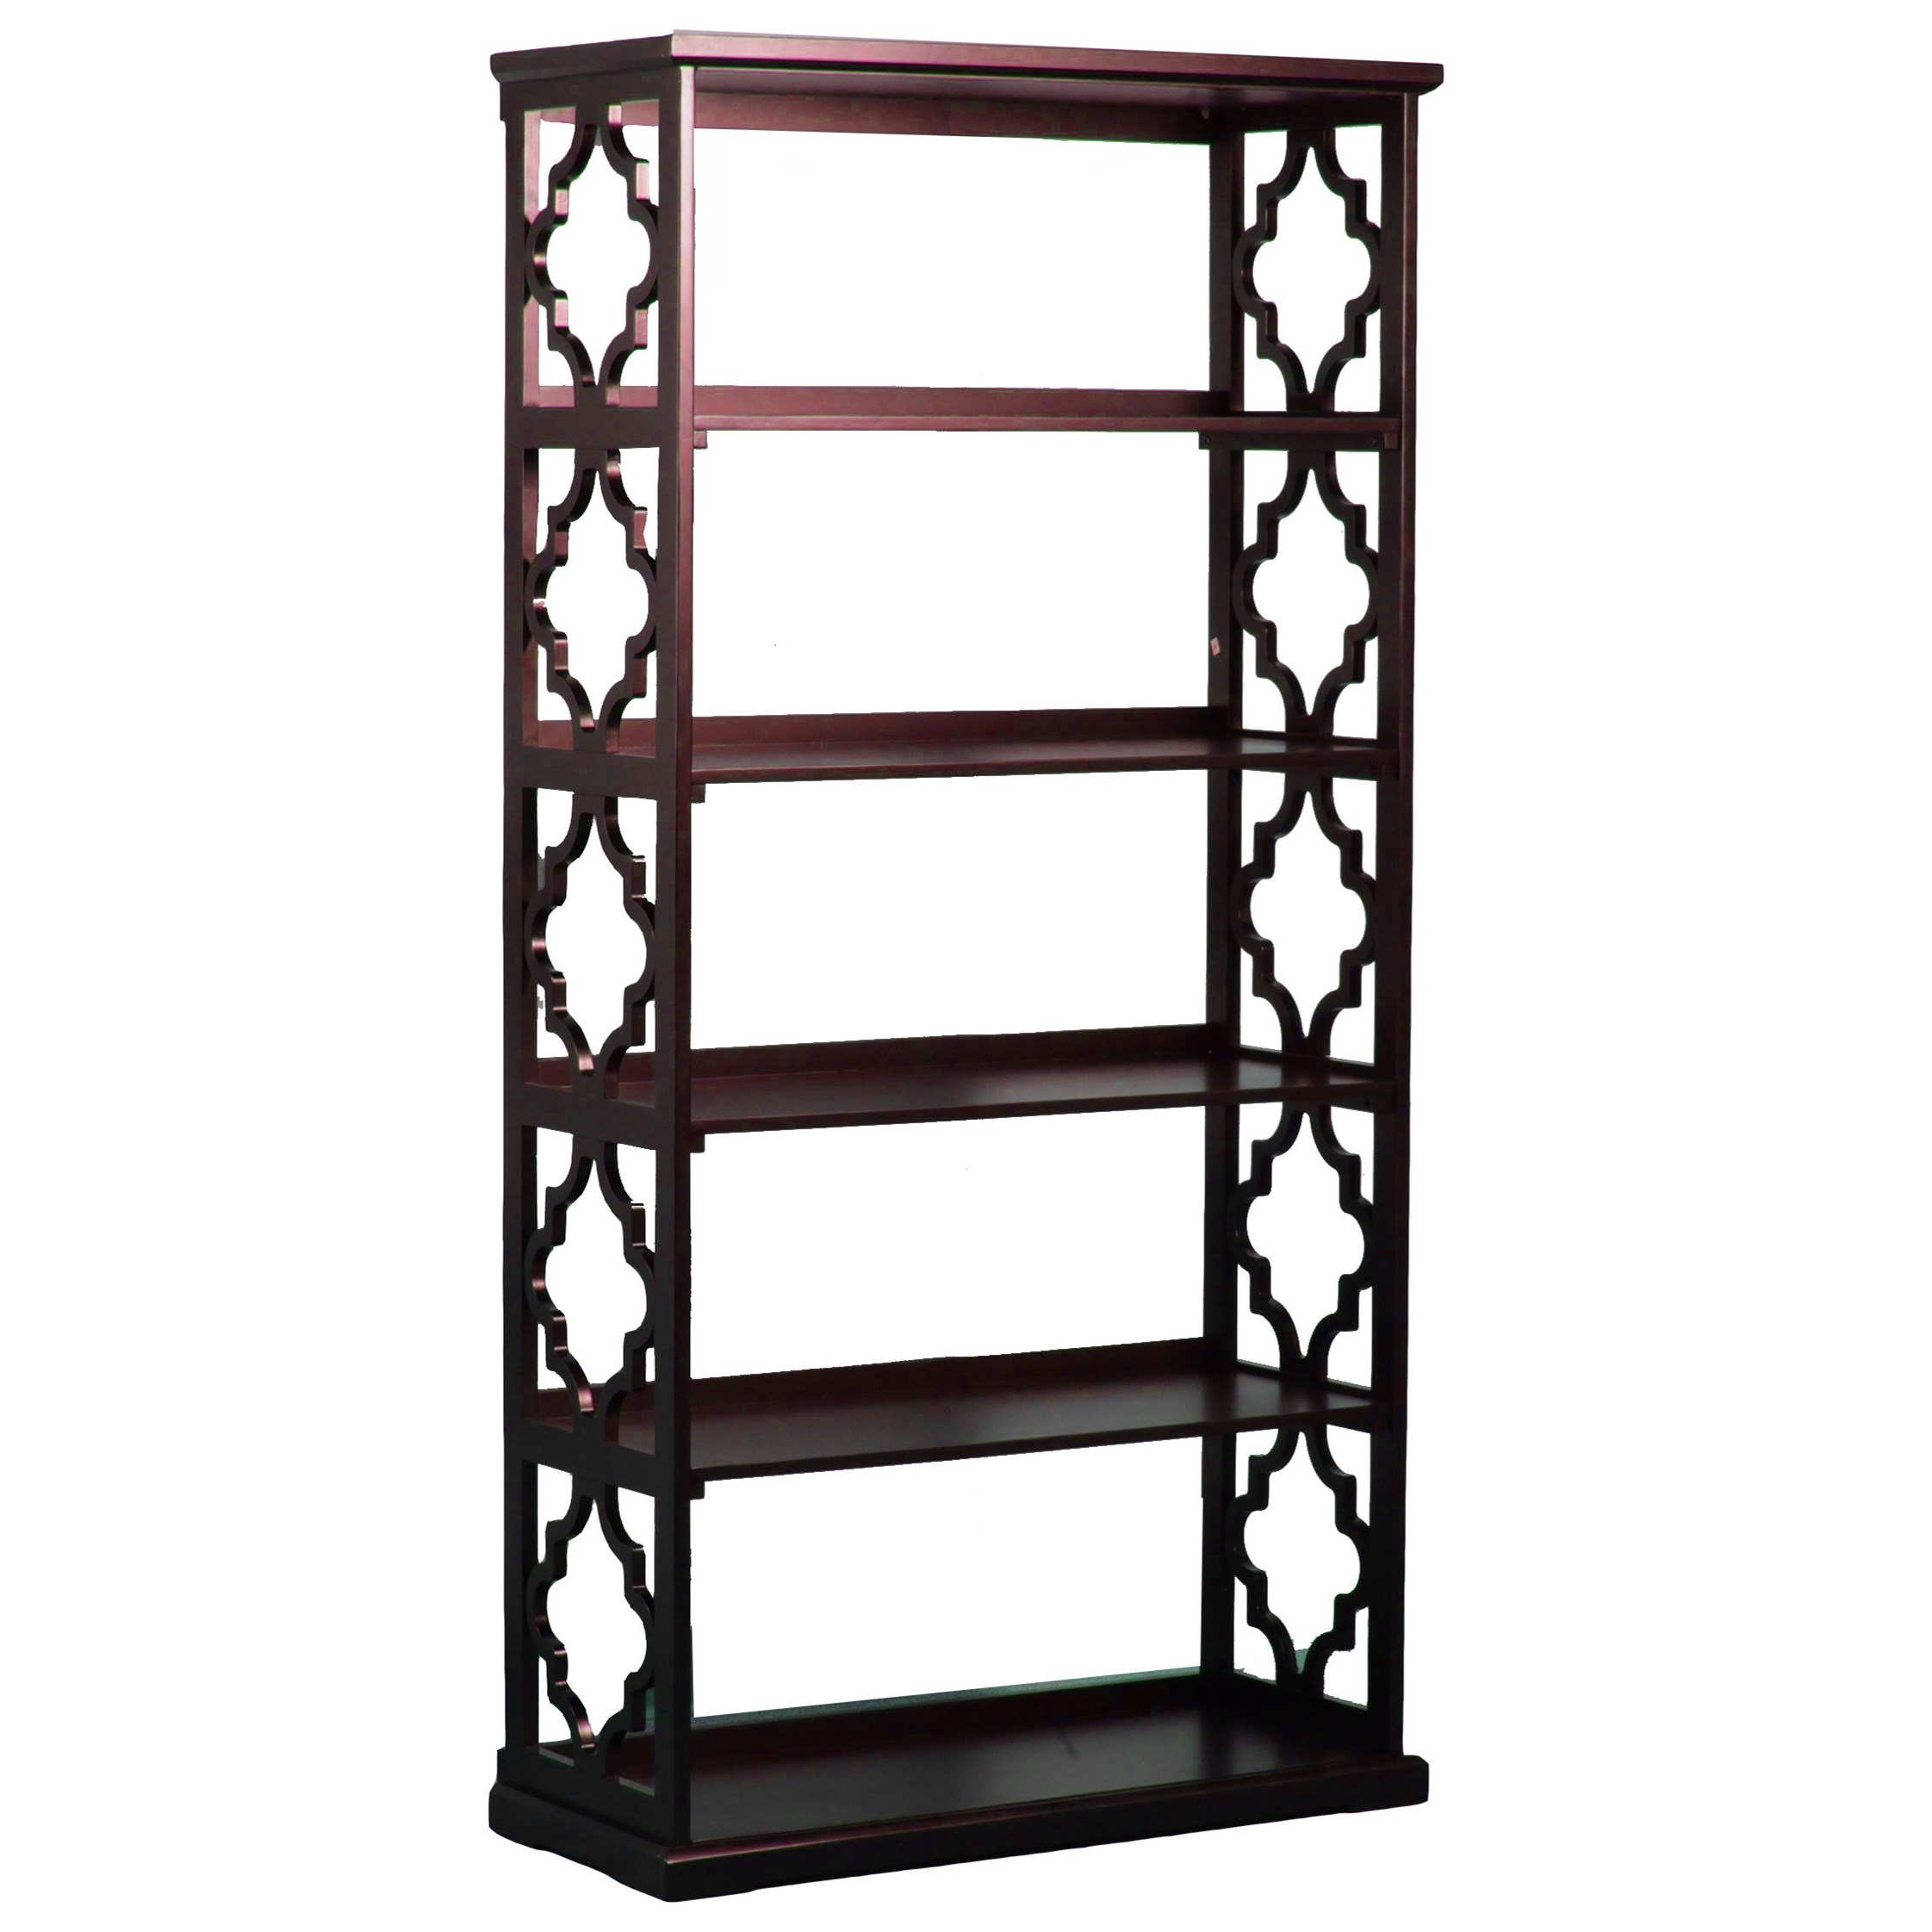 Powell Accent Furniture Turner Bookcase Espresso - Item Number: 14A8082BCE